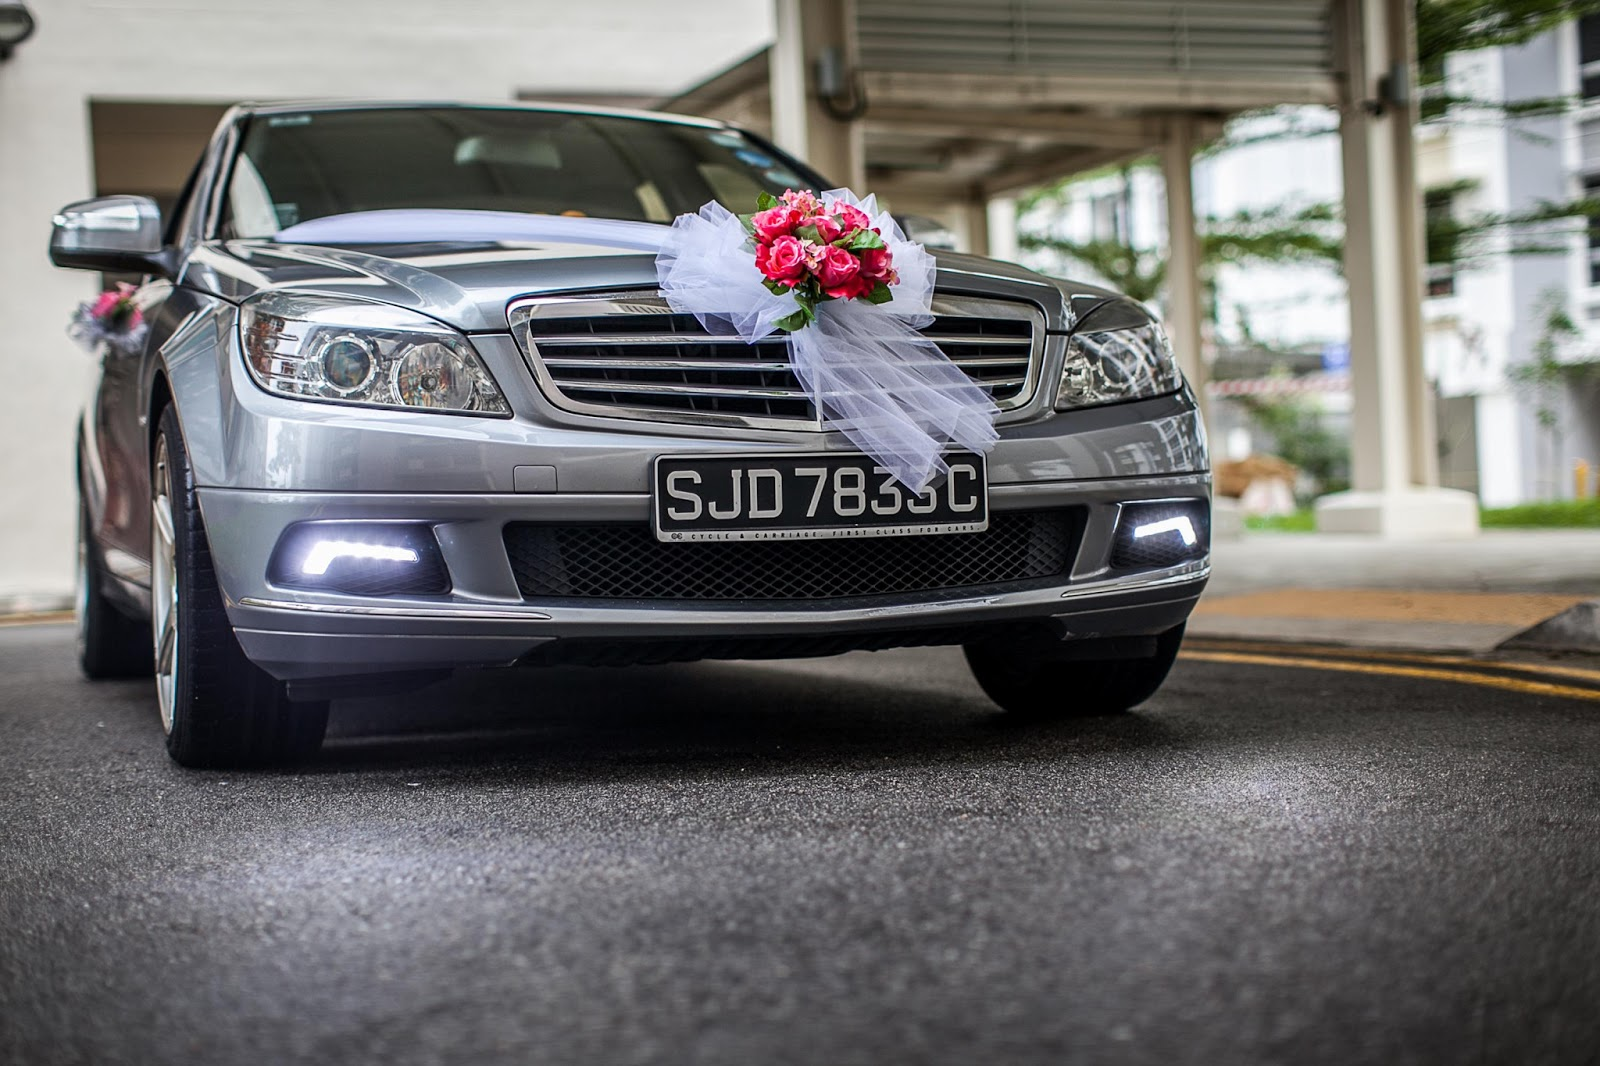 Wedding car decorations and accessories luxury lifestyle design wedding car decorations and accessories junglespirit Choice Image